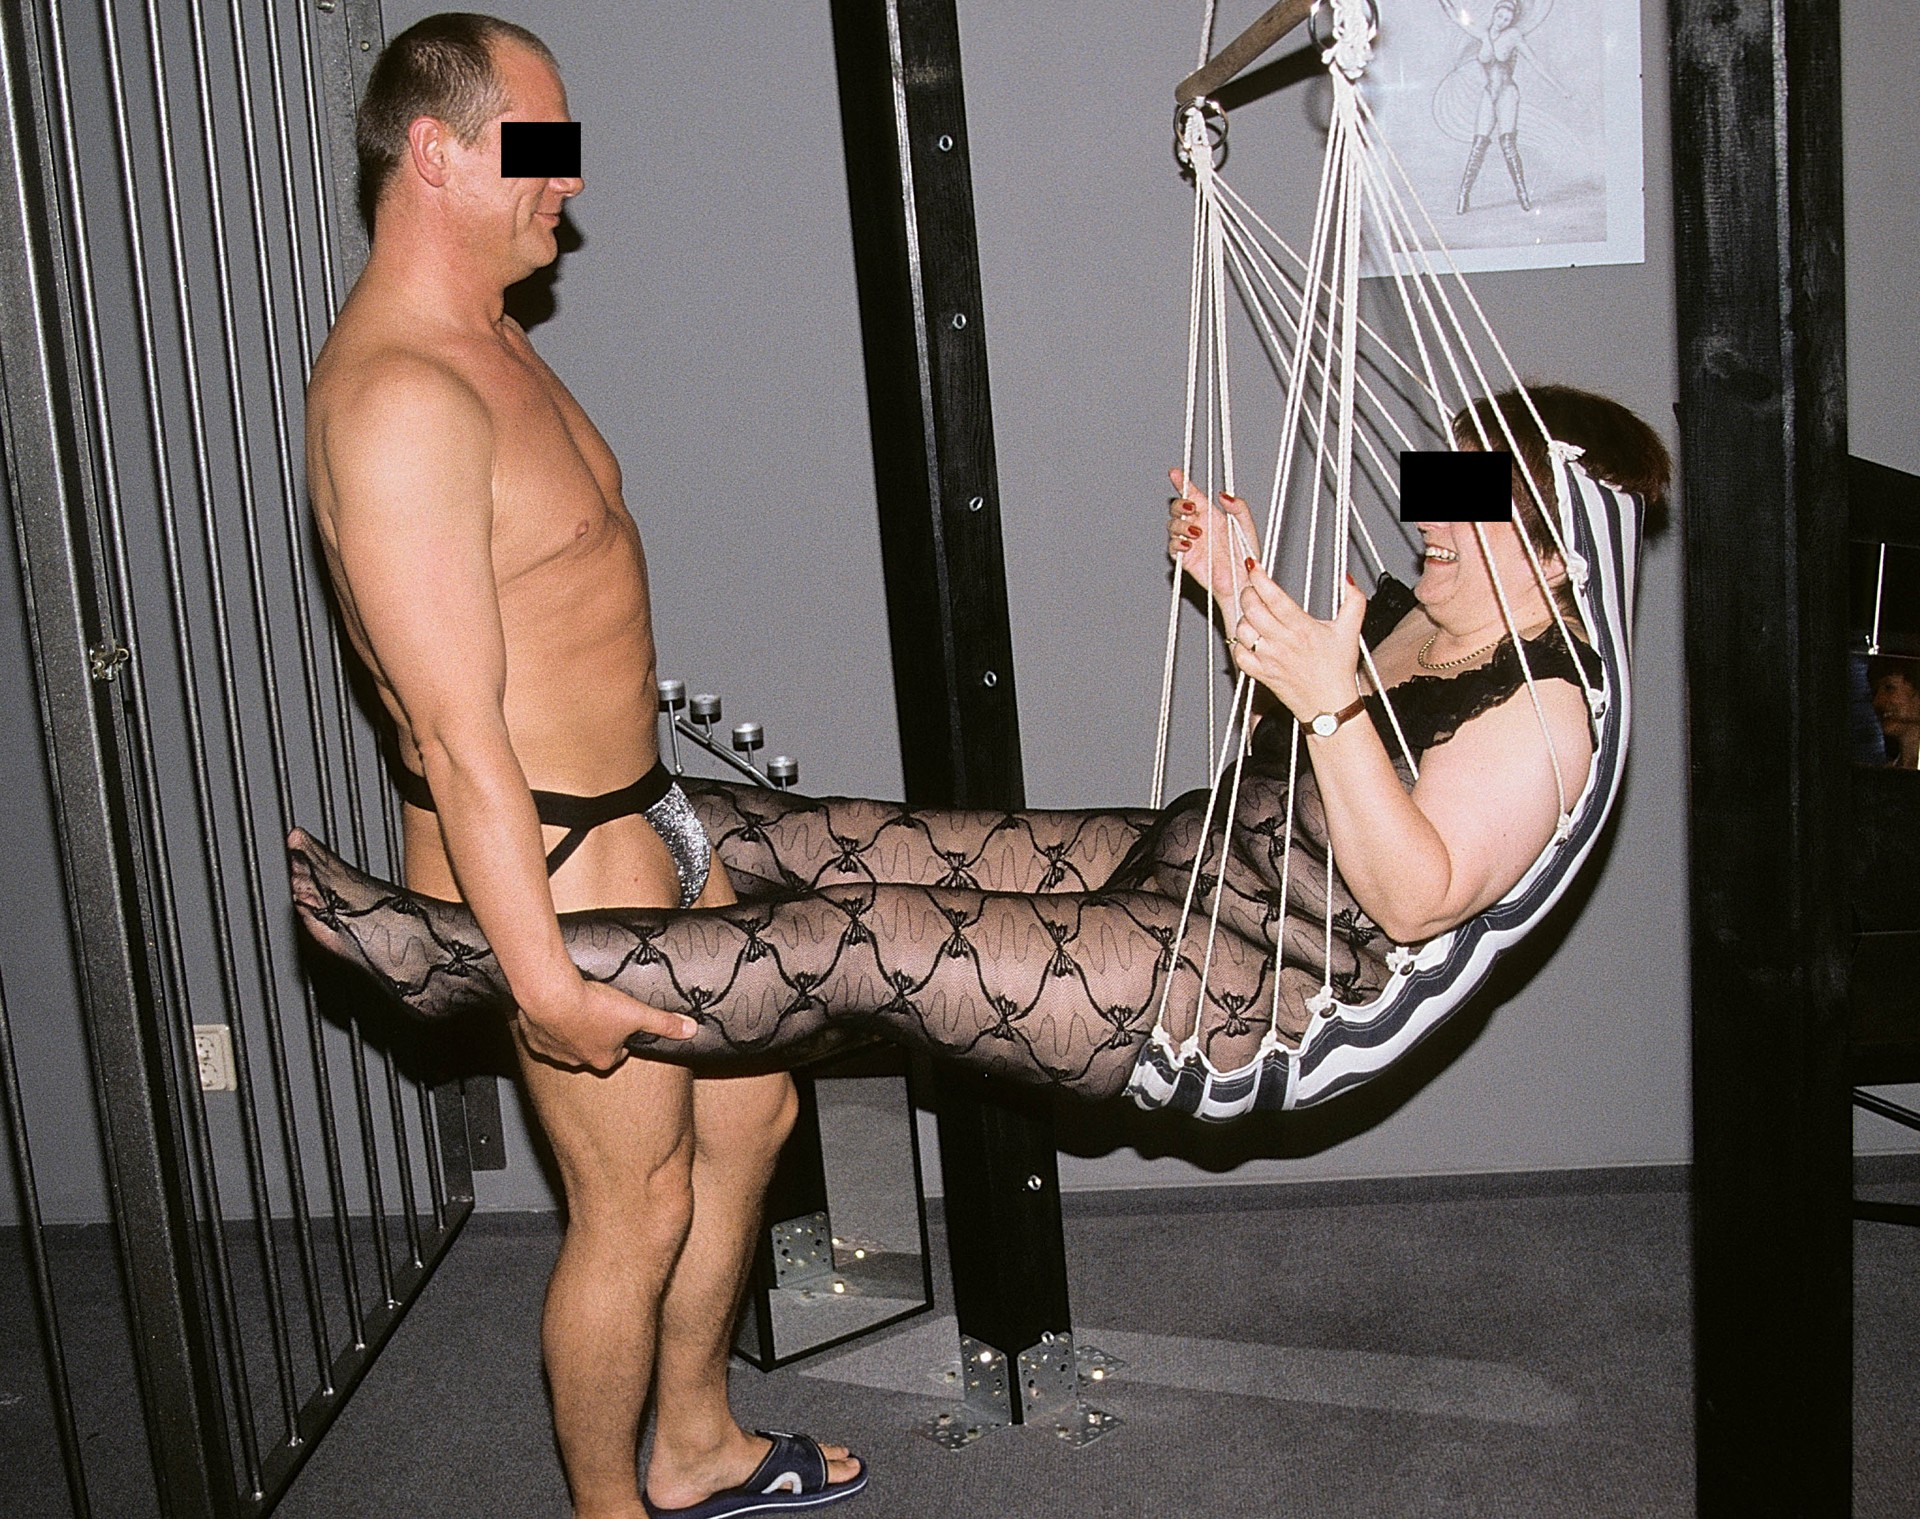 bdsm anfänger swinger club porno video